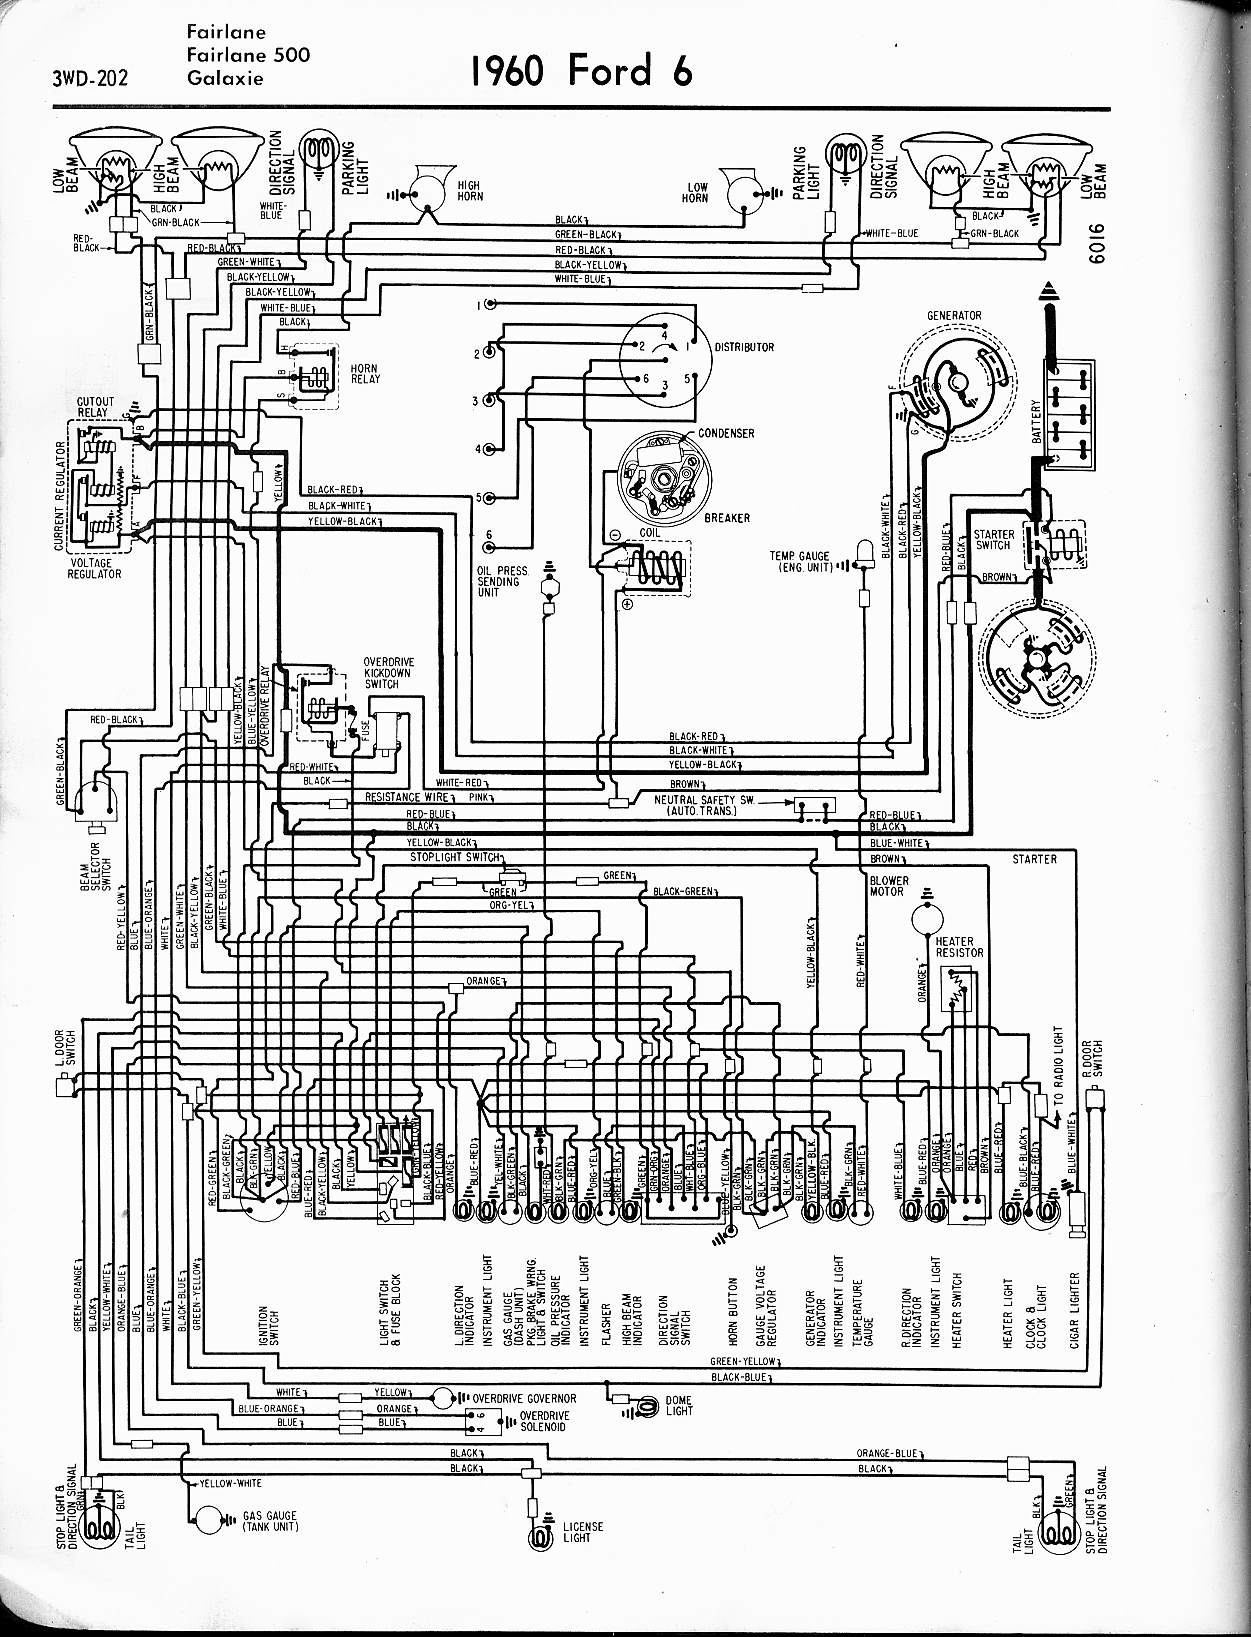 57 65 Ford Wiring Diagrams 1964 Ford Wiring Diagram 1954 Ford Wiring Diagram